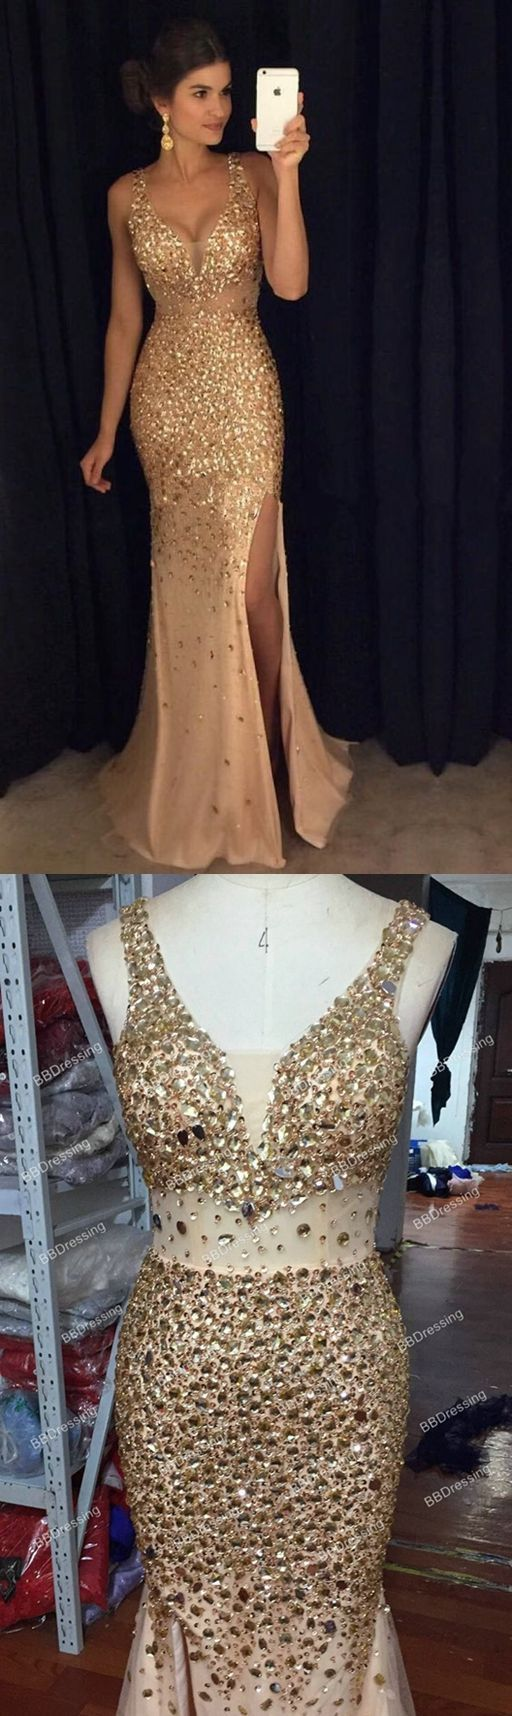 best vestidos de gala images on pinterest high fashion cute